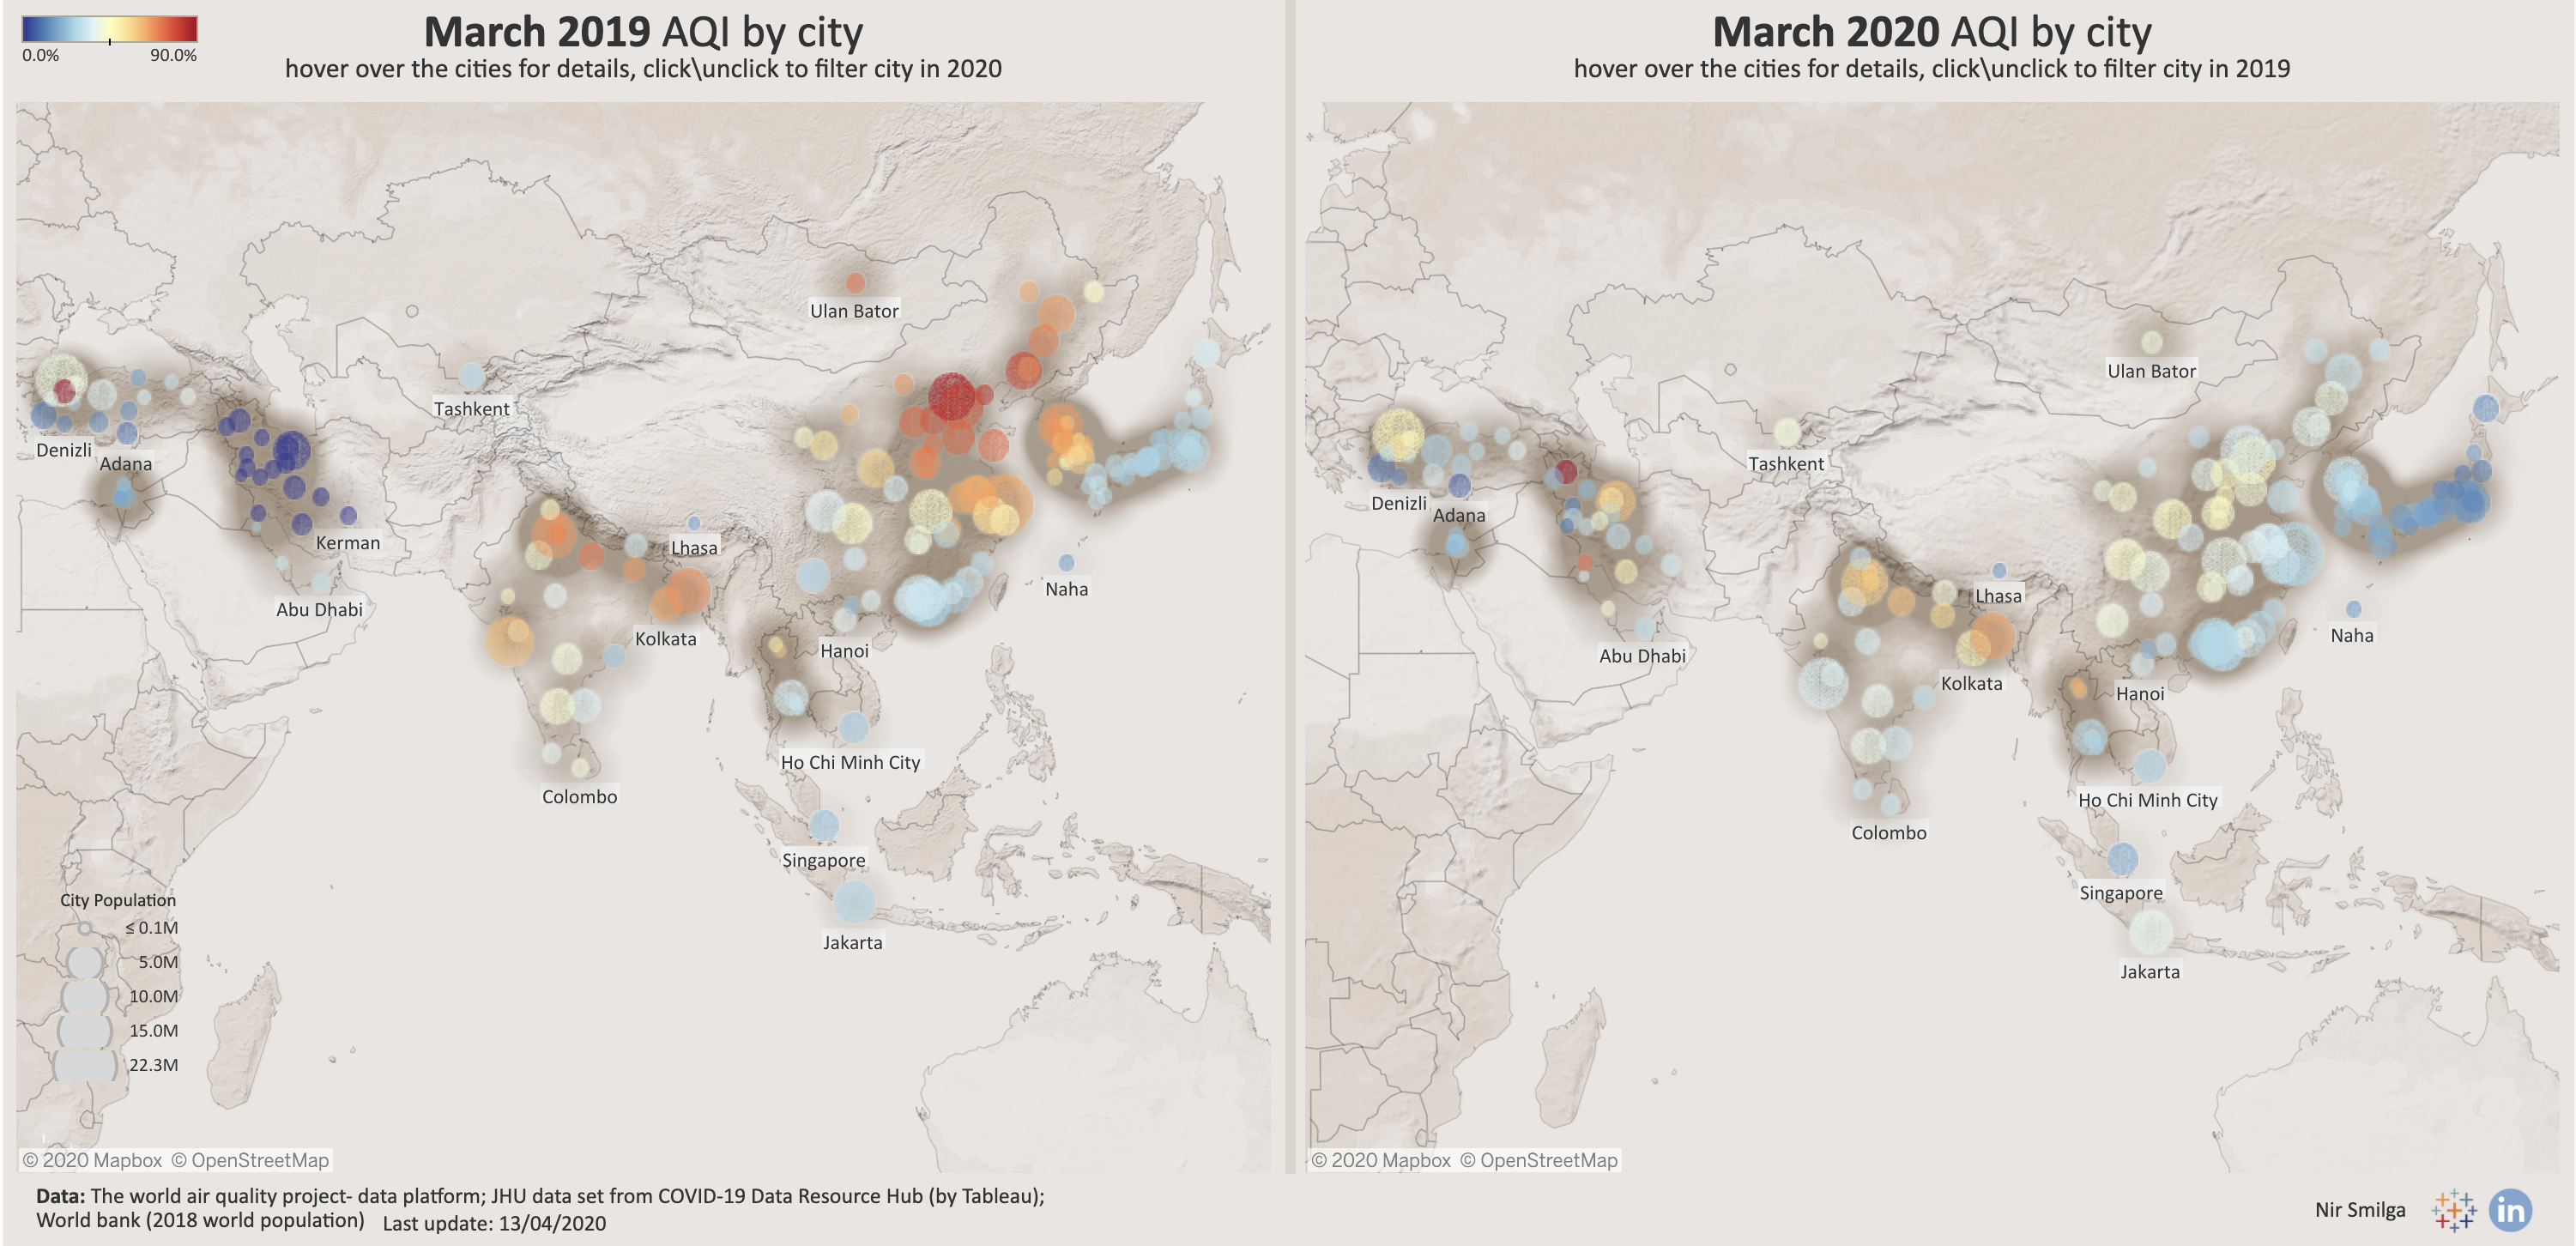 A year-on-year comparison of air quality in Asian cities, March 2019 to March 2020